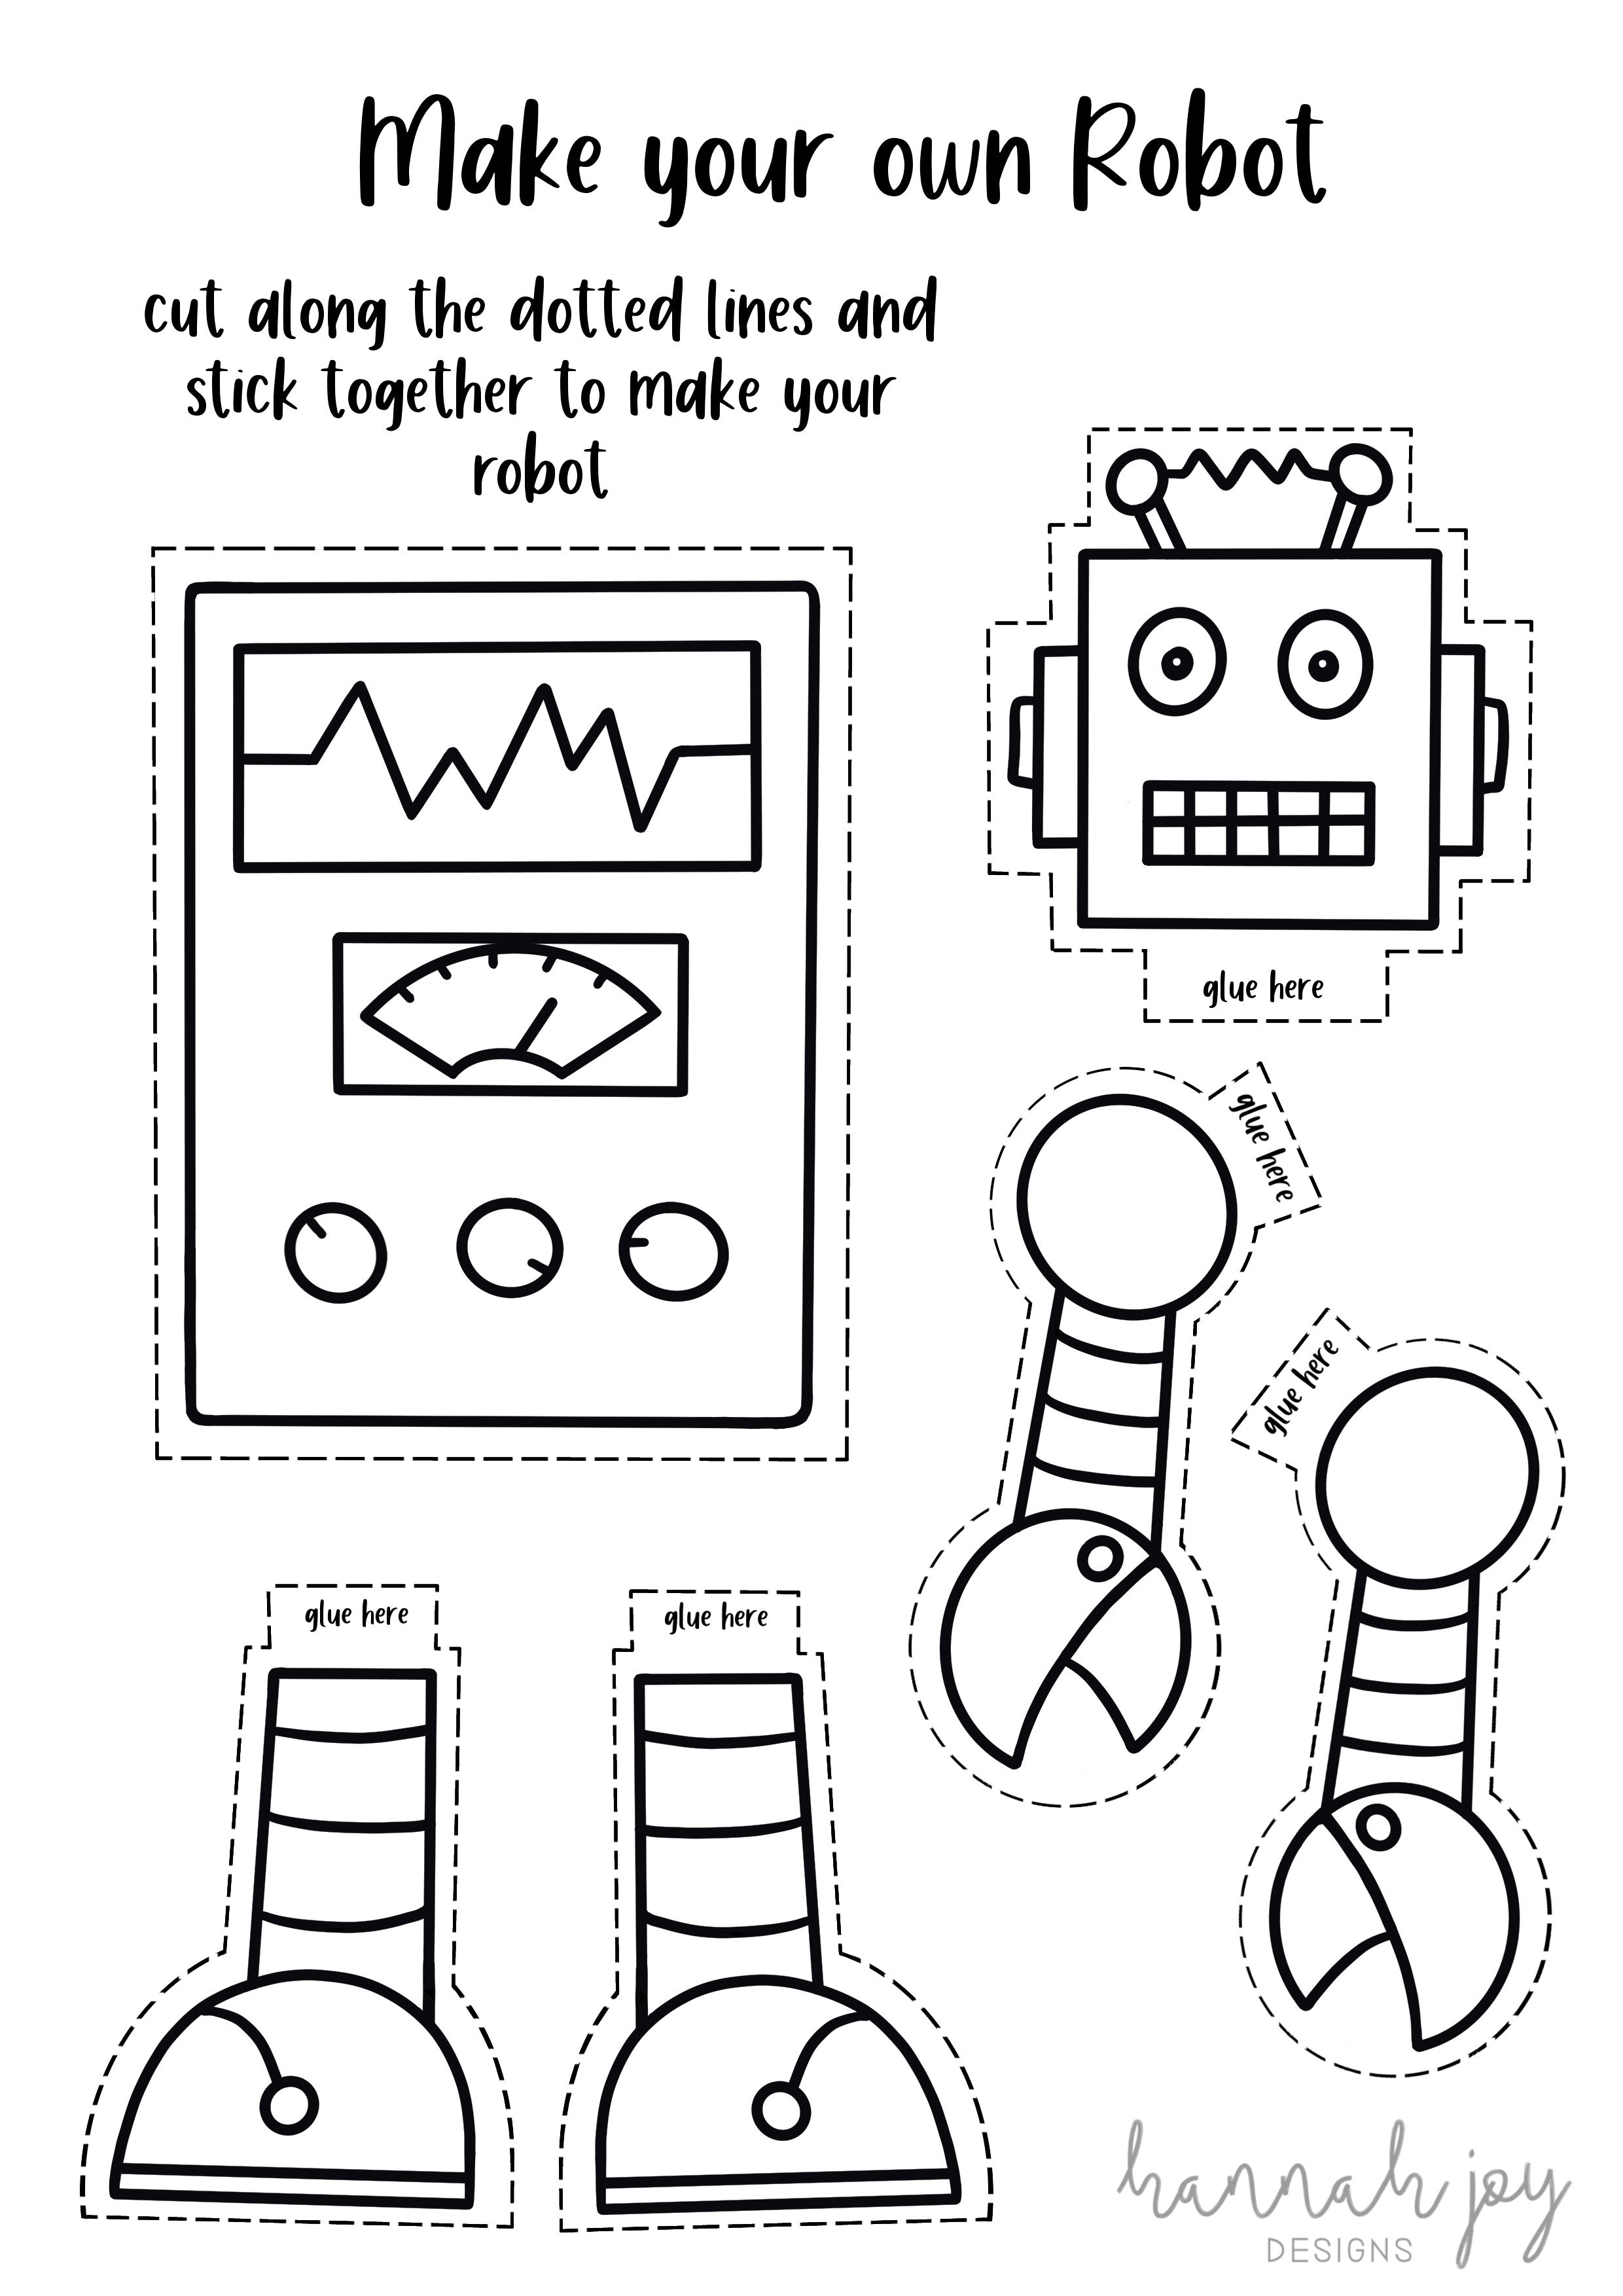 Make your own robot free activity sheet